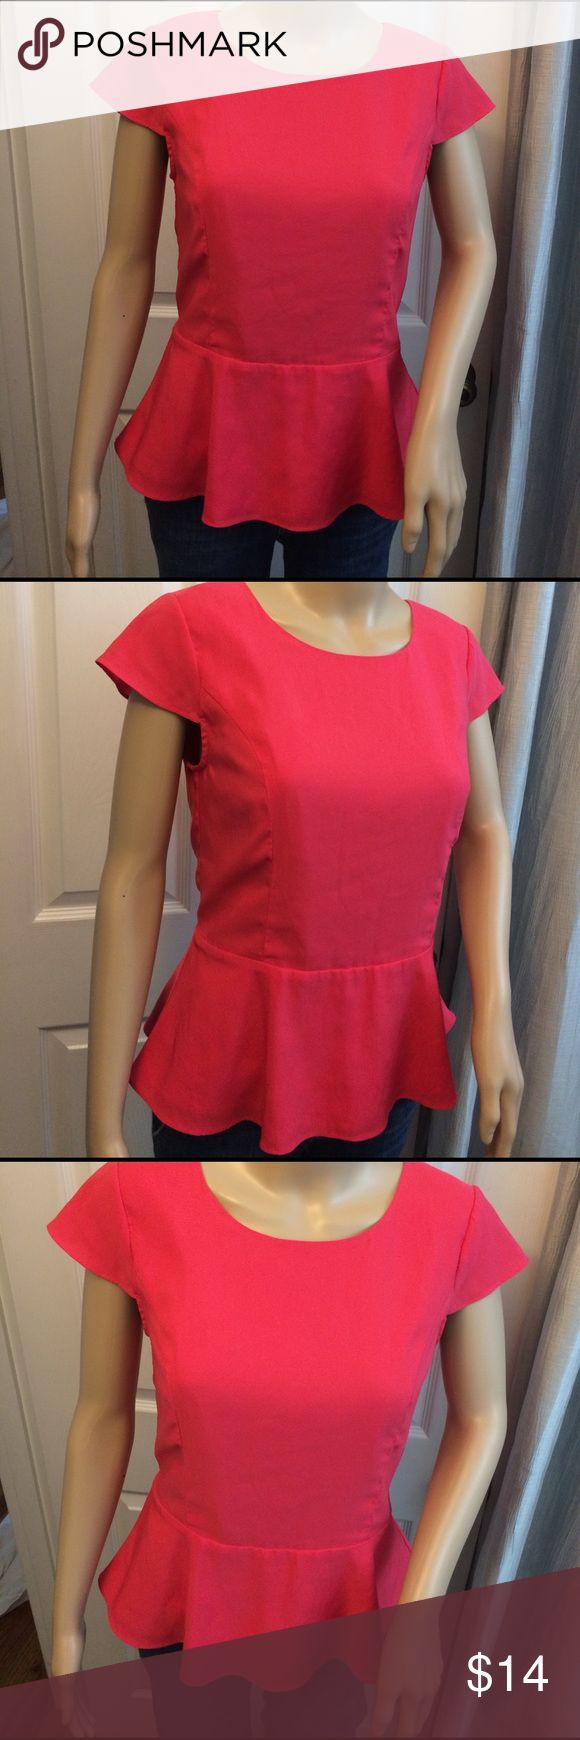 Express Peplum Top Express brand coral pink color peplum top. Gold zipper backing that unzips all the way. Very pretty top lined with silky polyester. No stains or holes. Cap sleeves. Express Tops Blouses